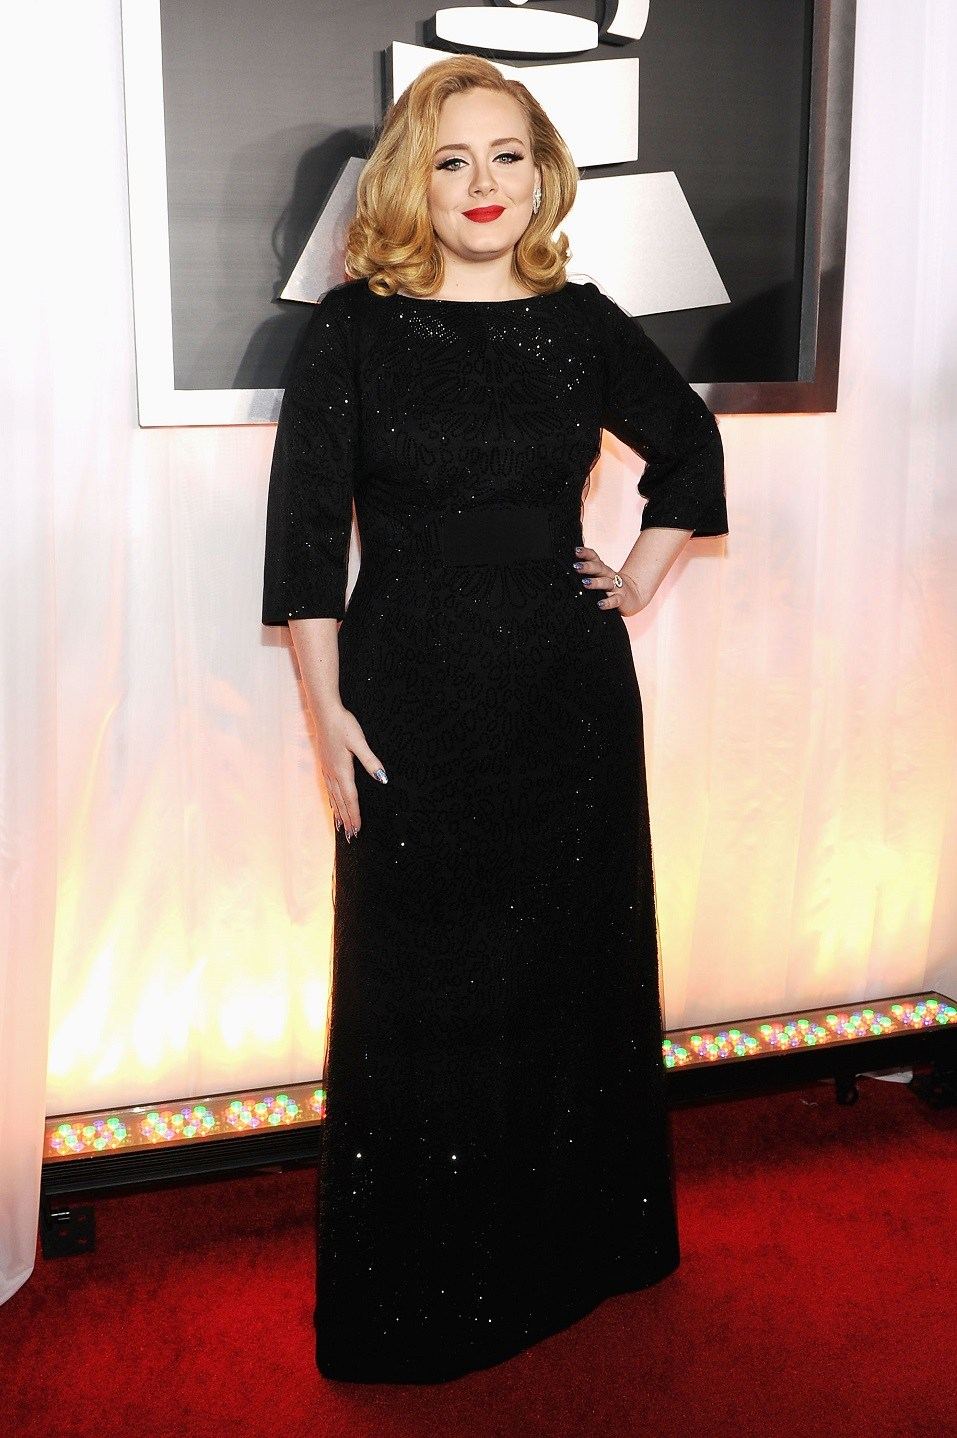 Singer Adele arrives at the 54th Annual GRAMMY Awards held at Staples Center